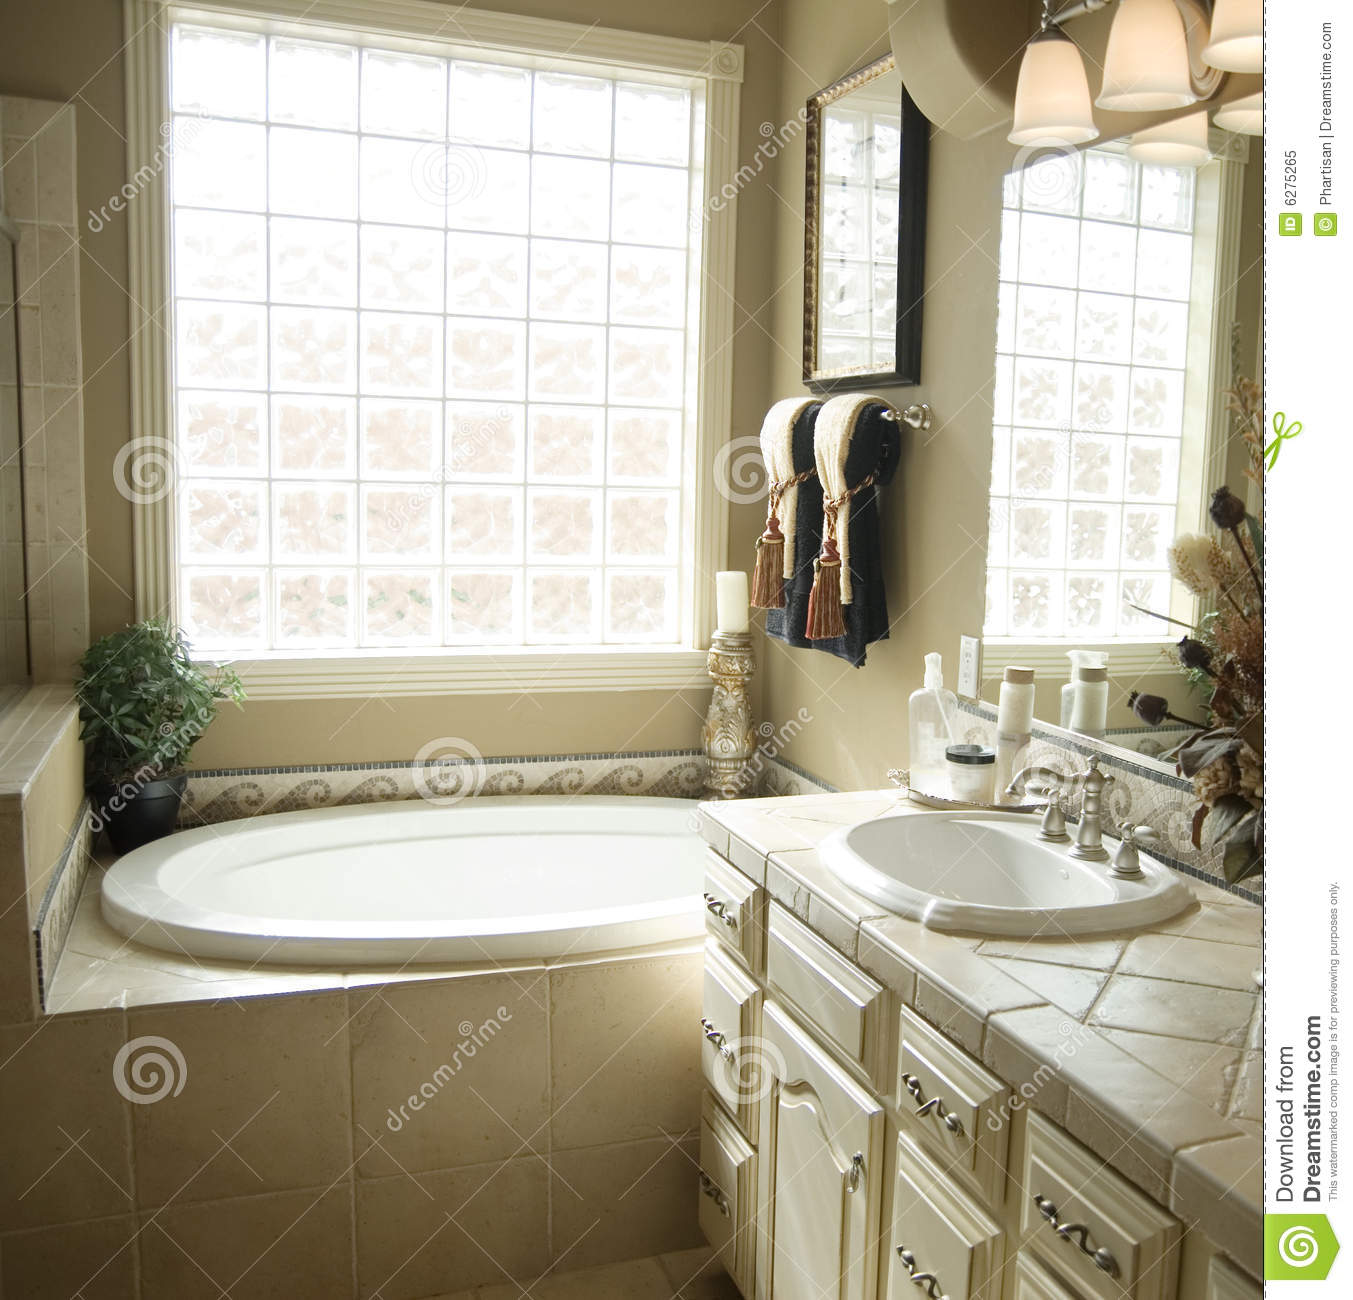 Beautiful bathroom interior design royalty free stock for Beautiful bathroom decor